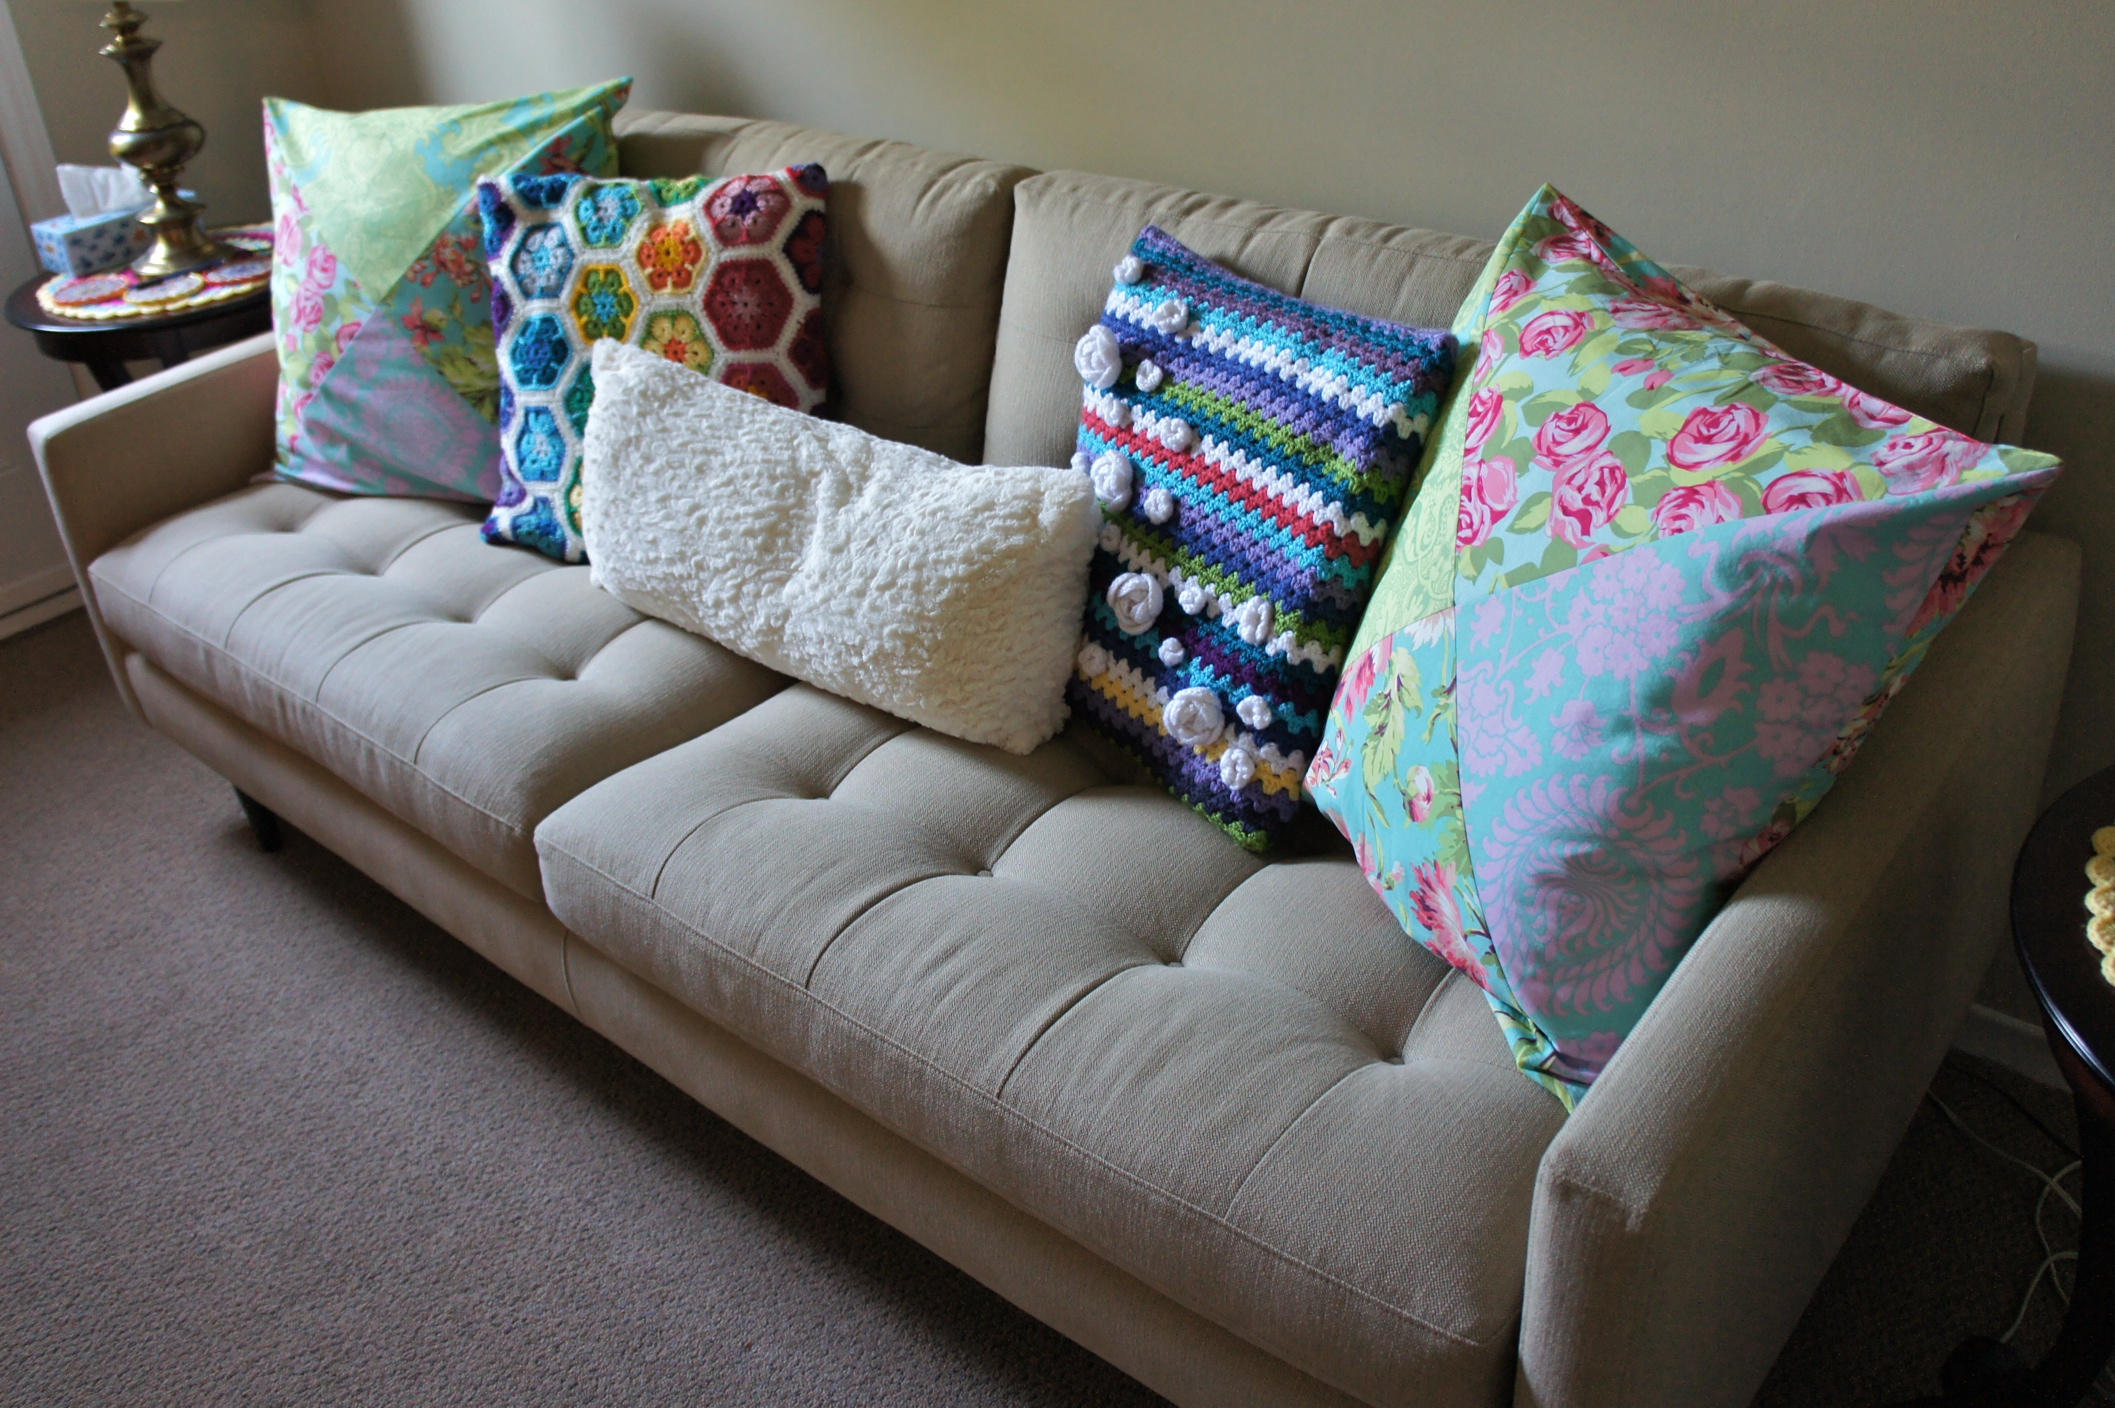 How Many Throw Pillows On A Sectional Couch : I must have ALL the couch pillows ? Ms Premise-Conclusion